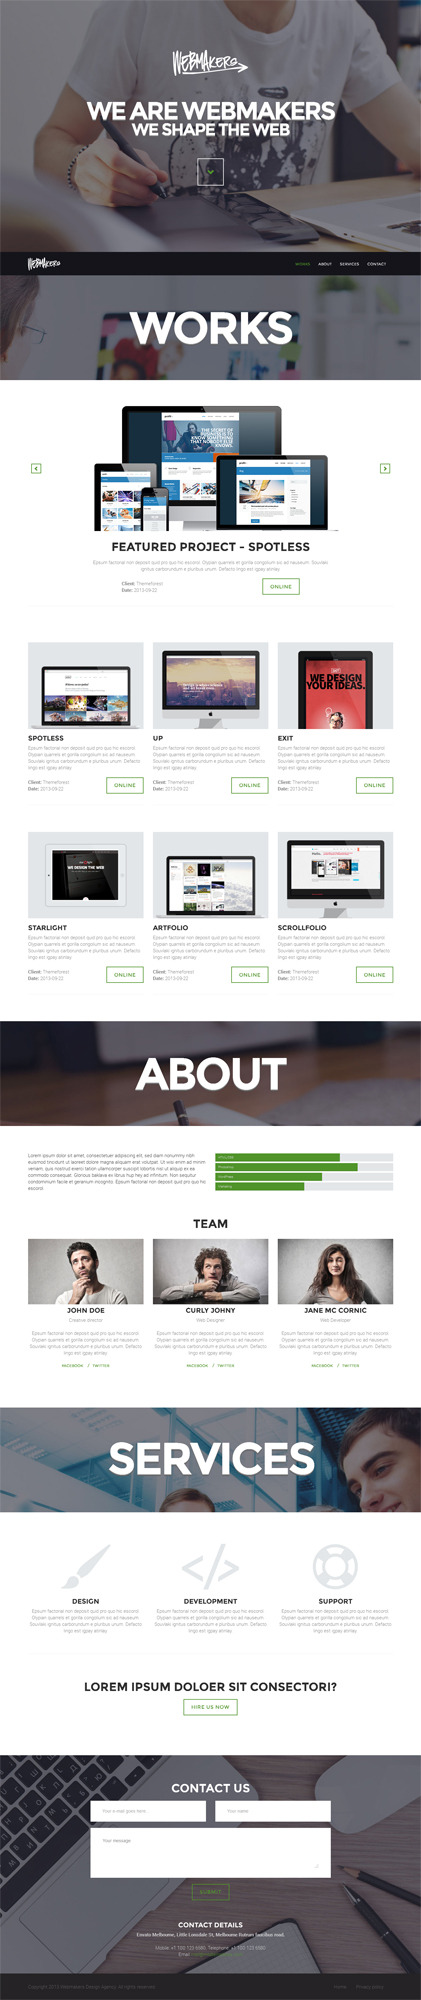 Webmakers - one page WordPress Theme by iWebStudio | ThemeForest